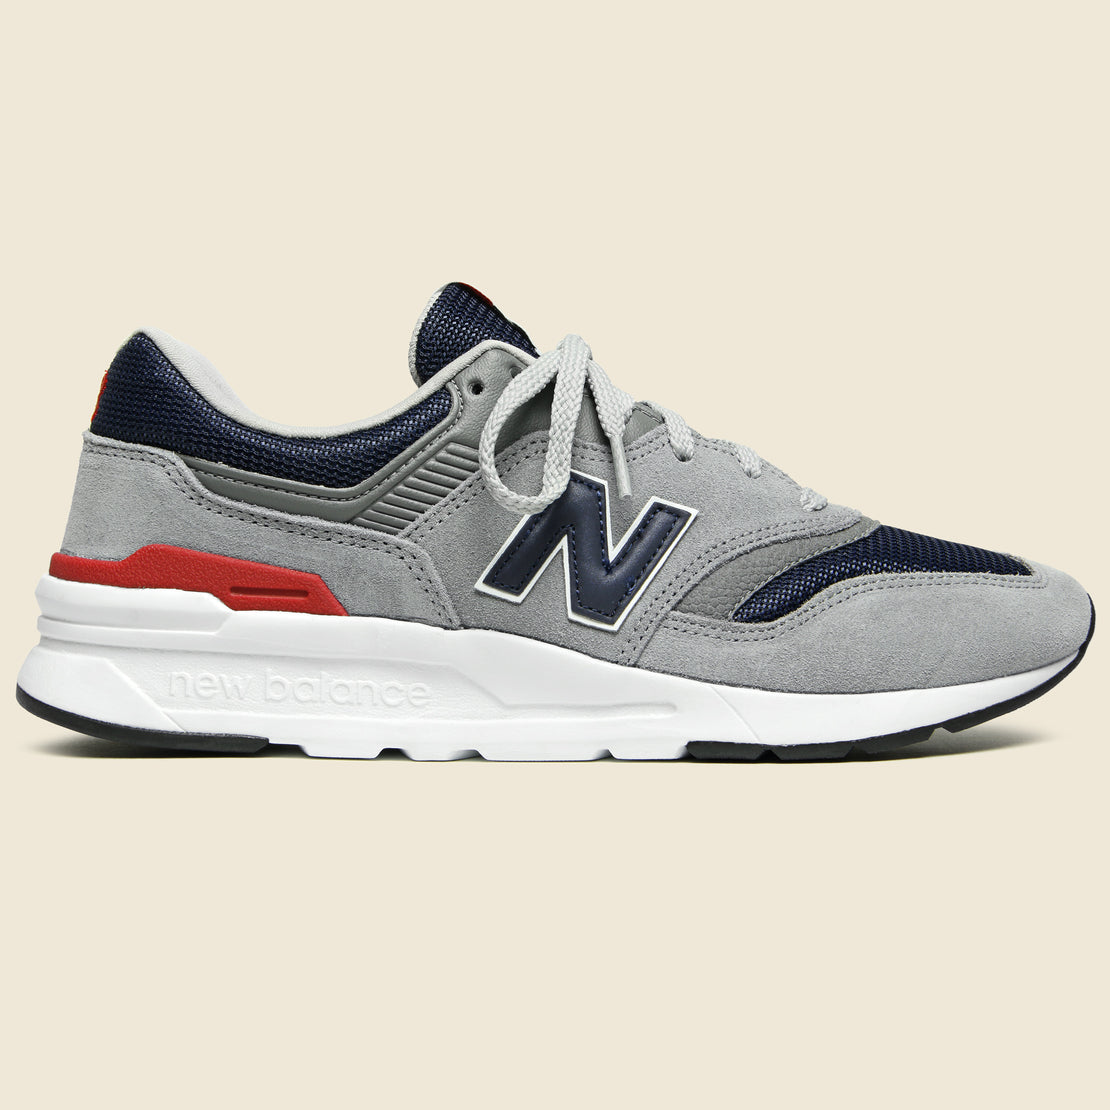 New Balance 997H Sneaker - Grey